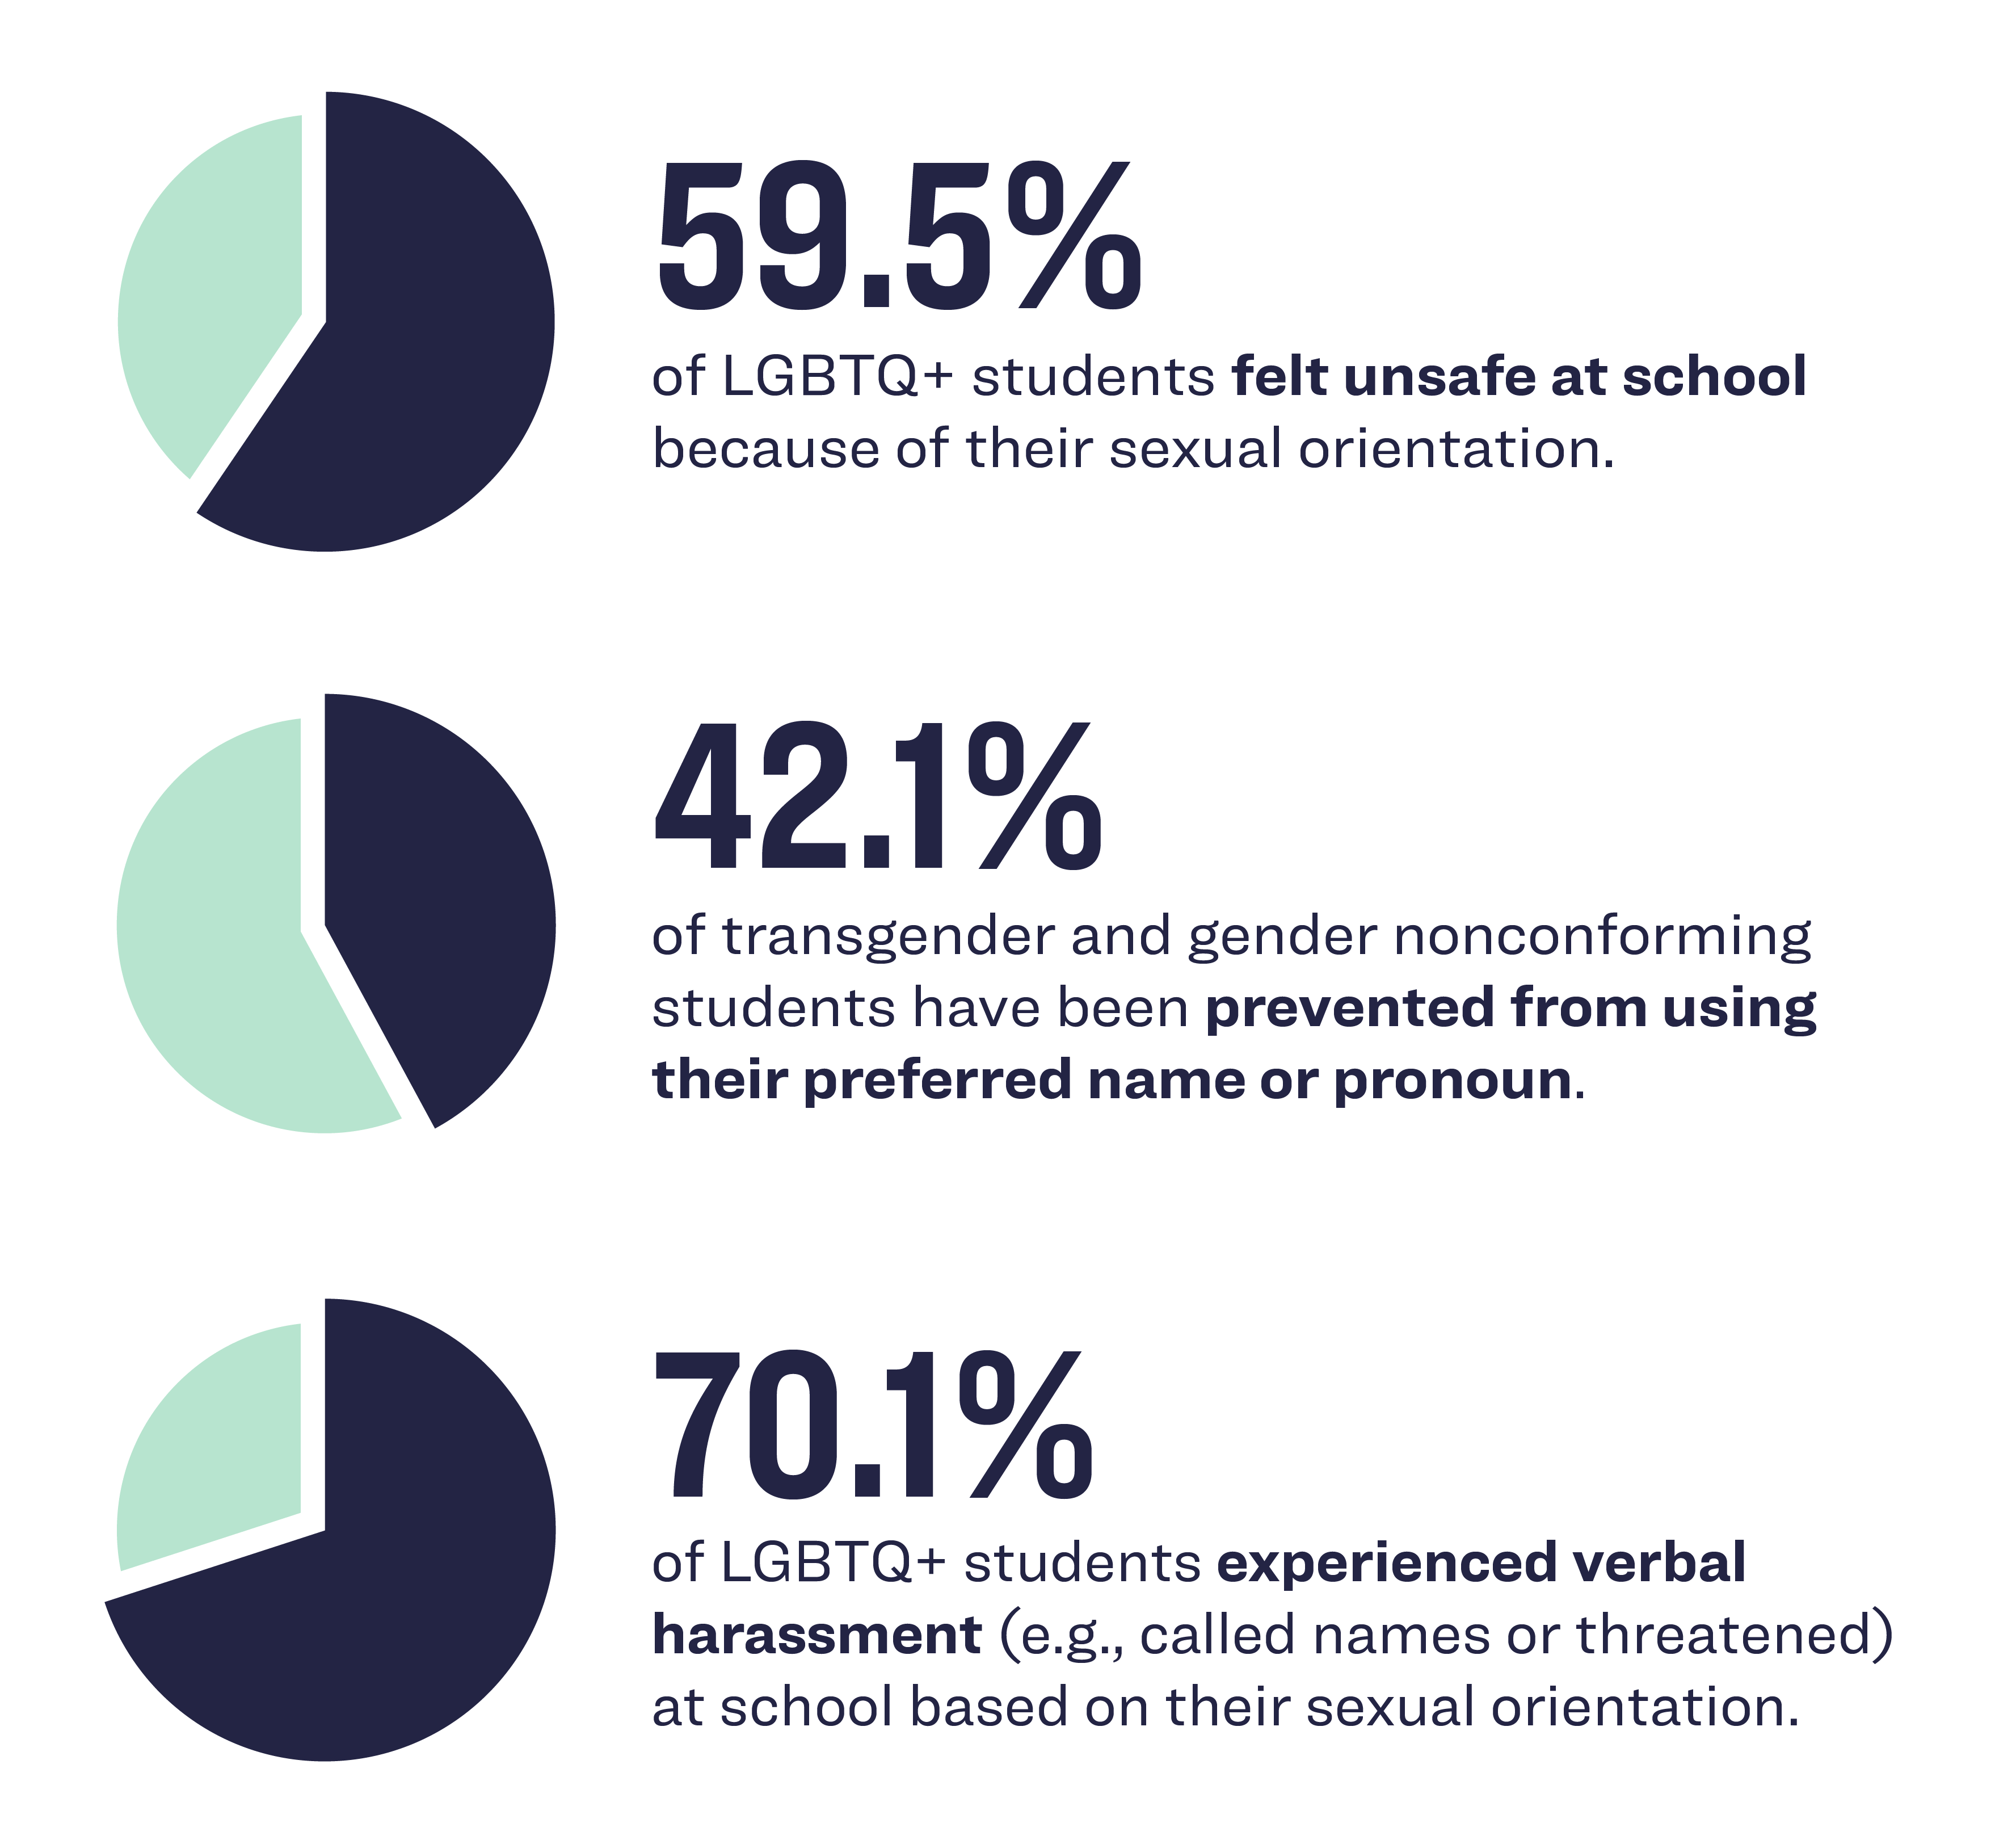 A pie charts infographic showing: 59.5% of LGBTQ+ students felt unsafe at school because of their sexual orientation; 42.1% of transgender and gender nonconforming students have been prevented from using their preferred name or pronoun; 70.1% of LGBTQ+ students experienced verbal harassment (e.g., called names or threatened) at school based on their sexual orientation.